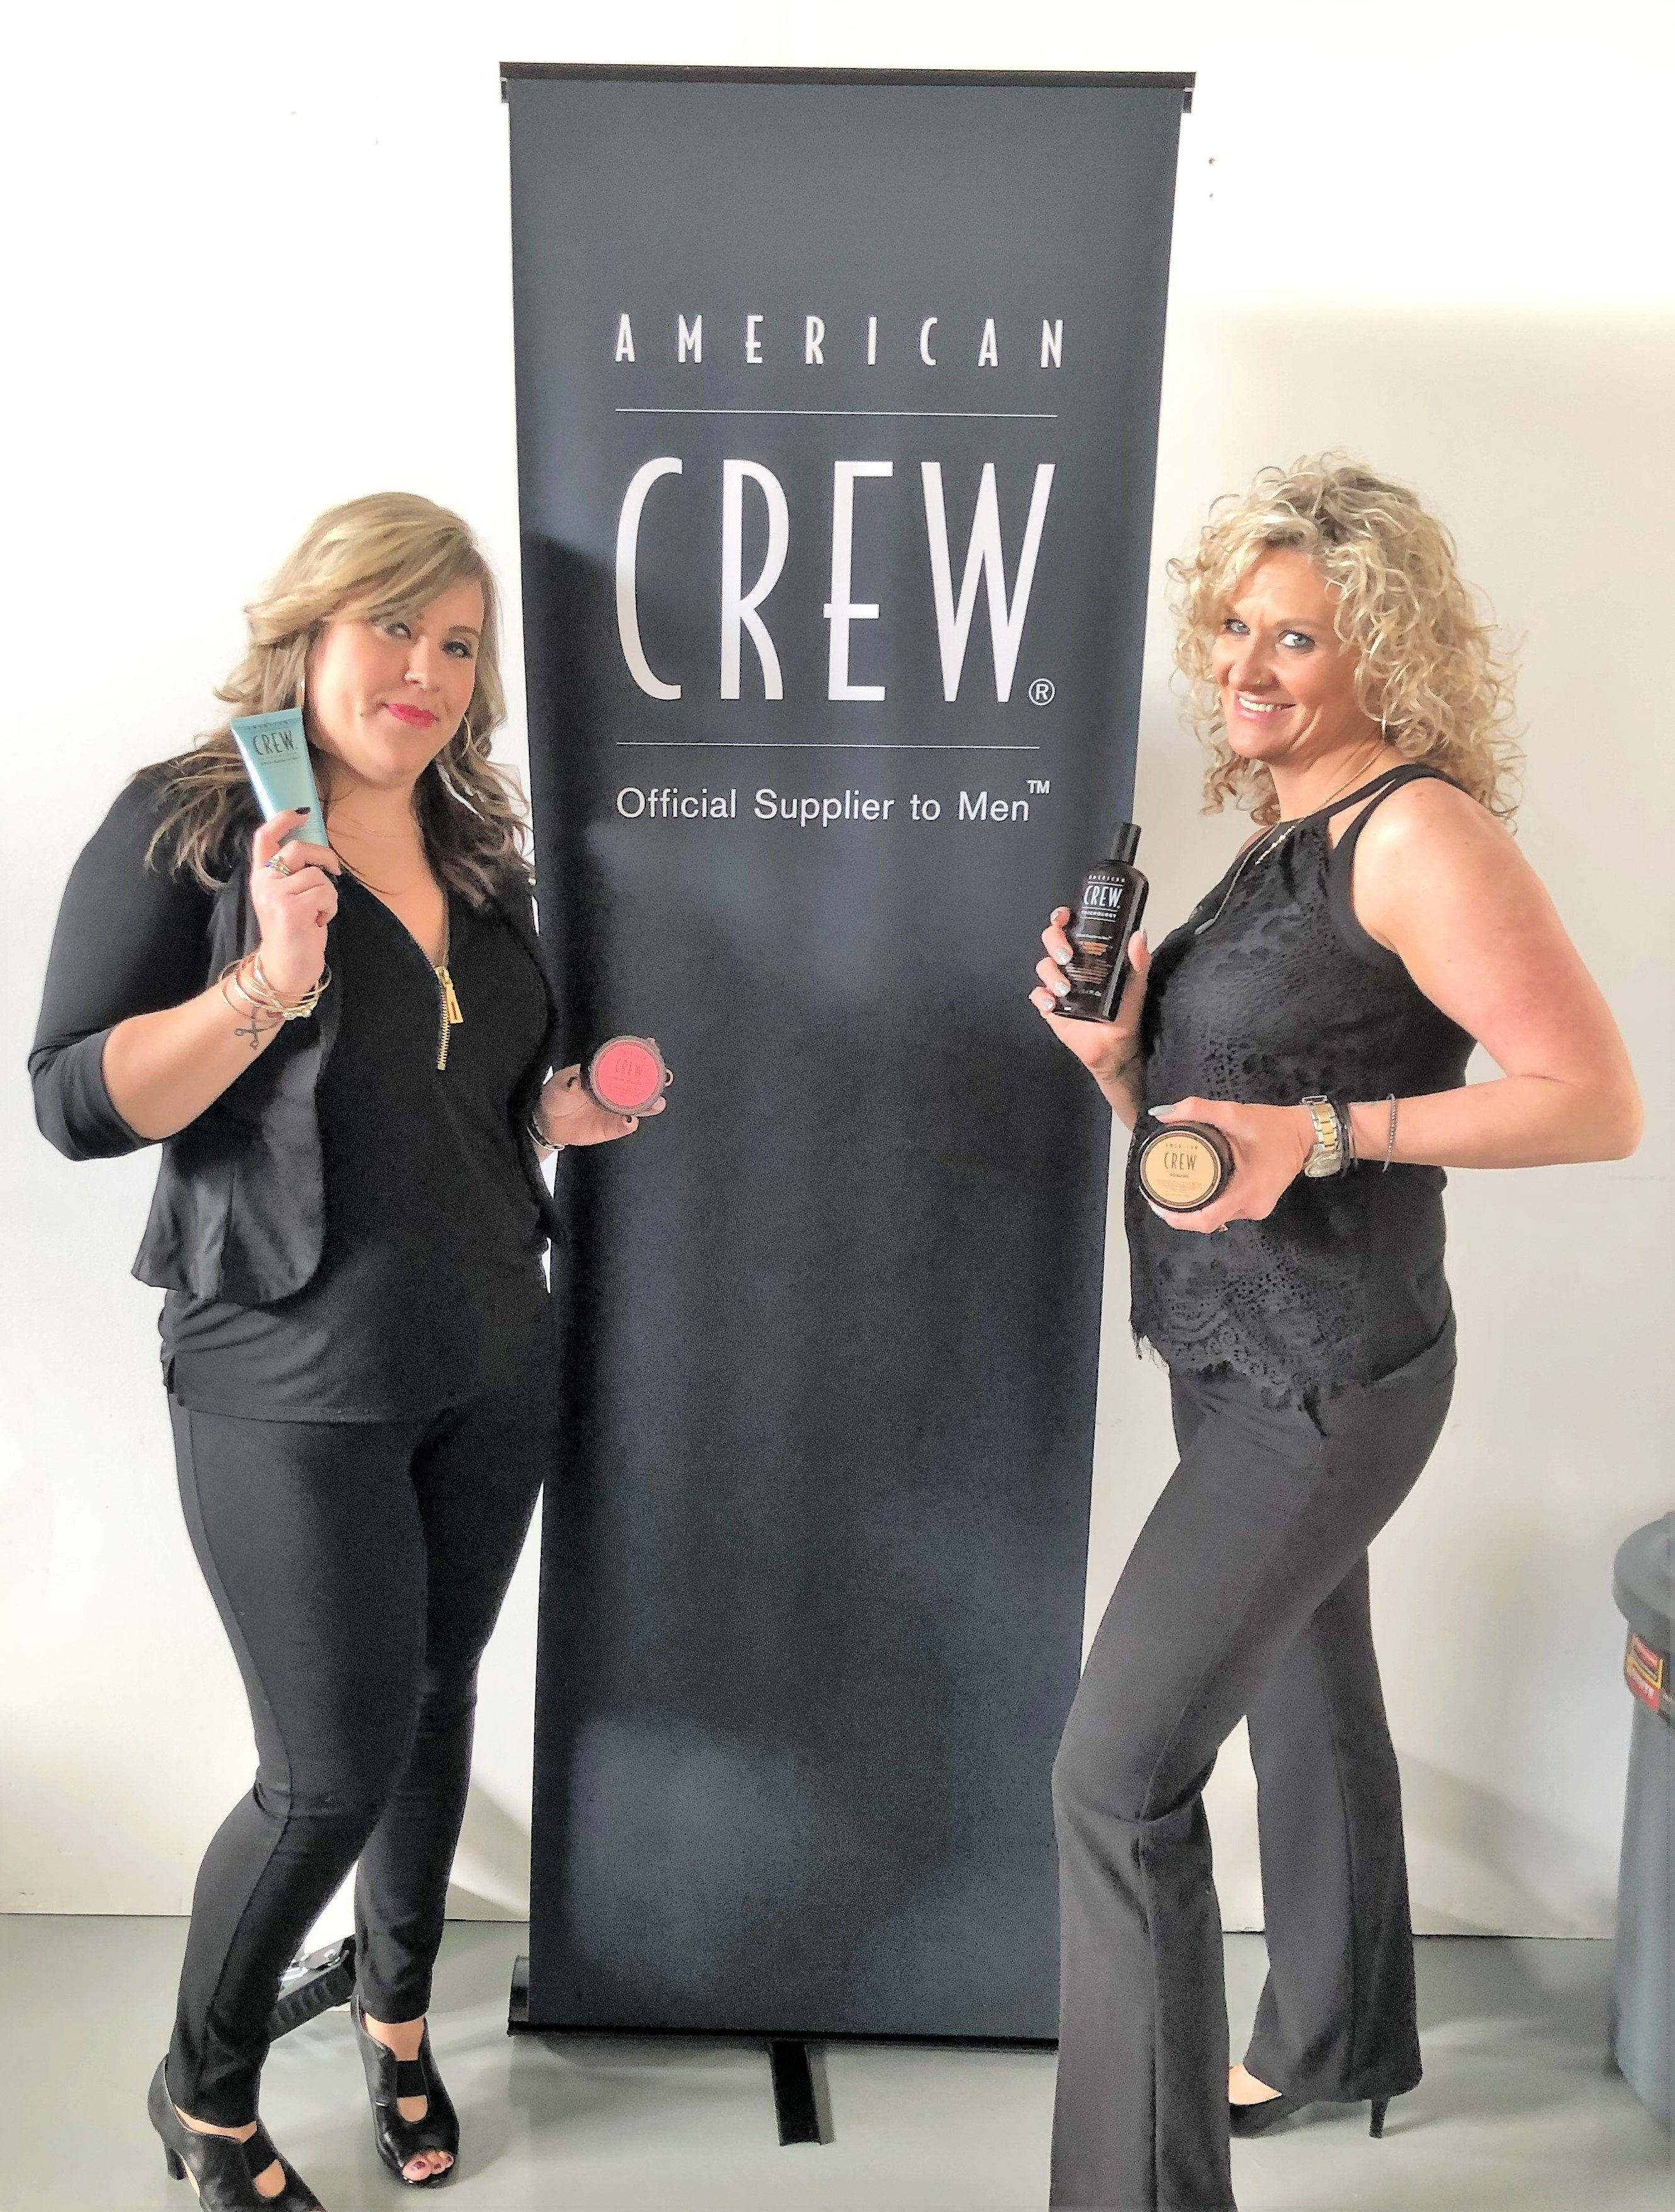 "<p><strong>""American Crew took care of all the arrangements,"" says Lee Ann, who is shown here with her guest, Sport Clips Manager Stephanie Clark. ""We learned a lot about their products and created memories that will last a lifetime.""</strong></p>"